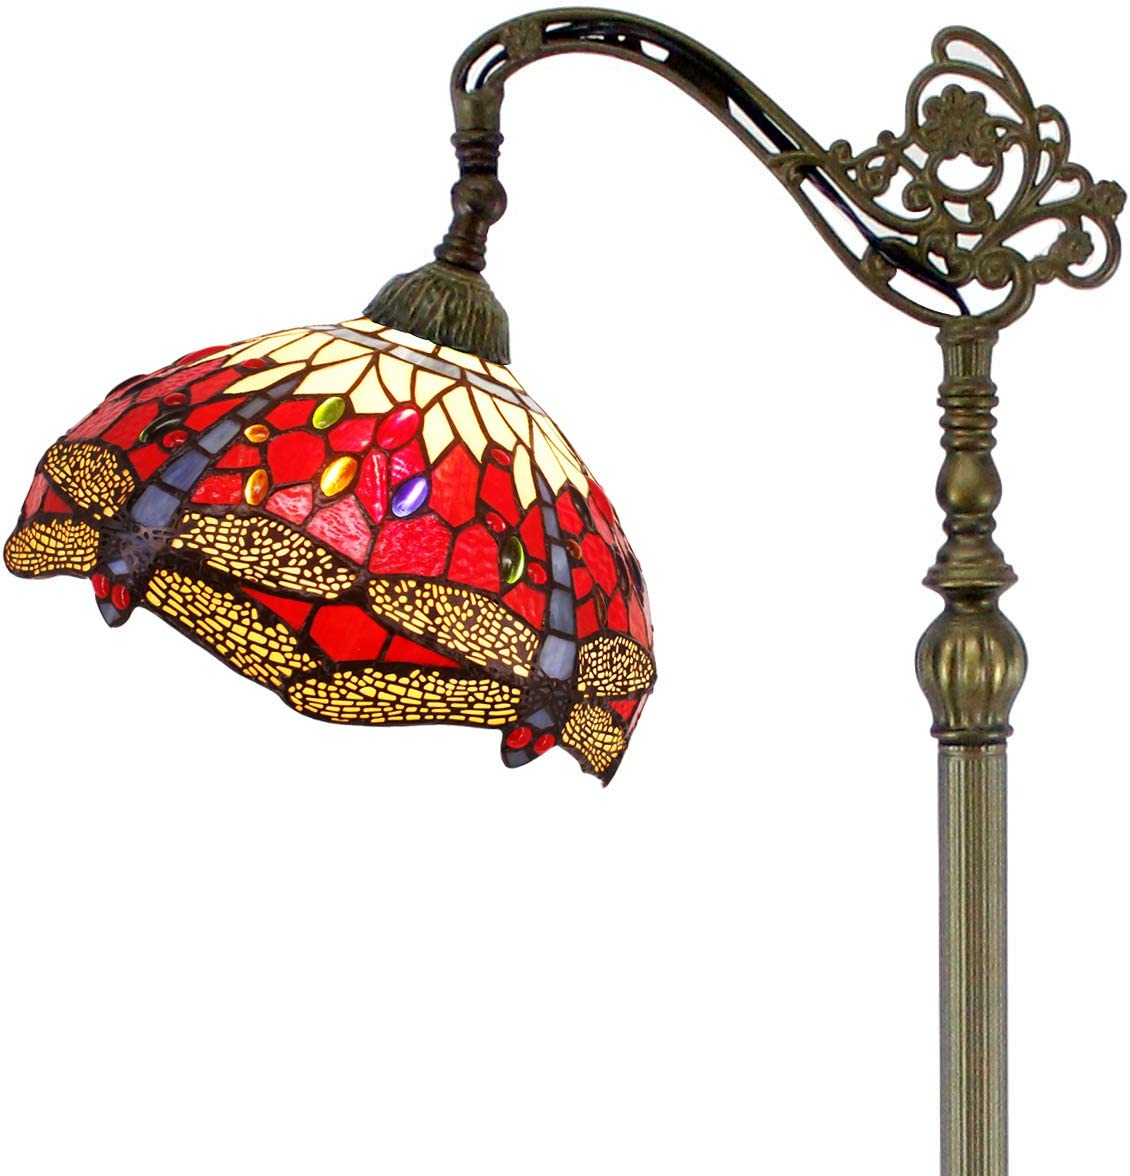 Tiffany Style Reading Floor Lamp Red Yellow Cloud Stained Glass with Crystal Bead Dragonfly Lampshade 64 Inch Tall Antique Arched Base for Bedroom Living Room Lighting Table Set Gifts S328 WERFACTORY